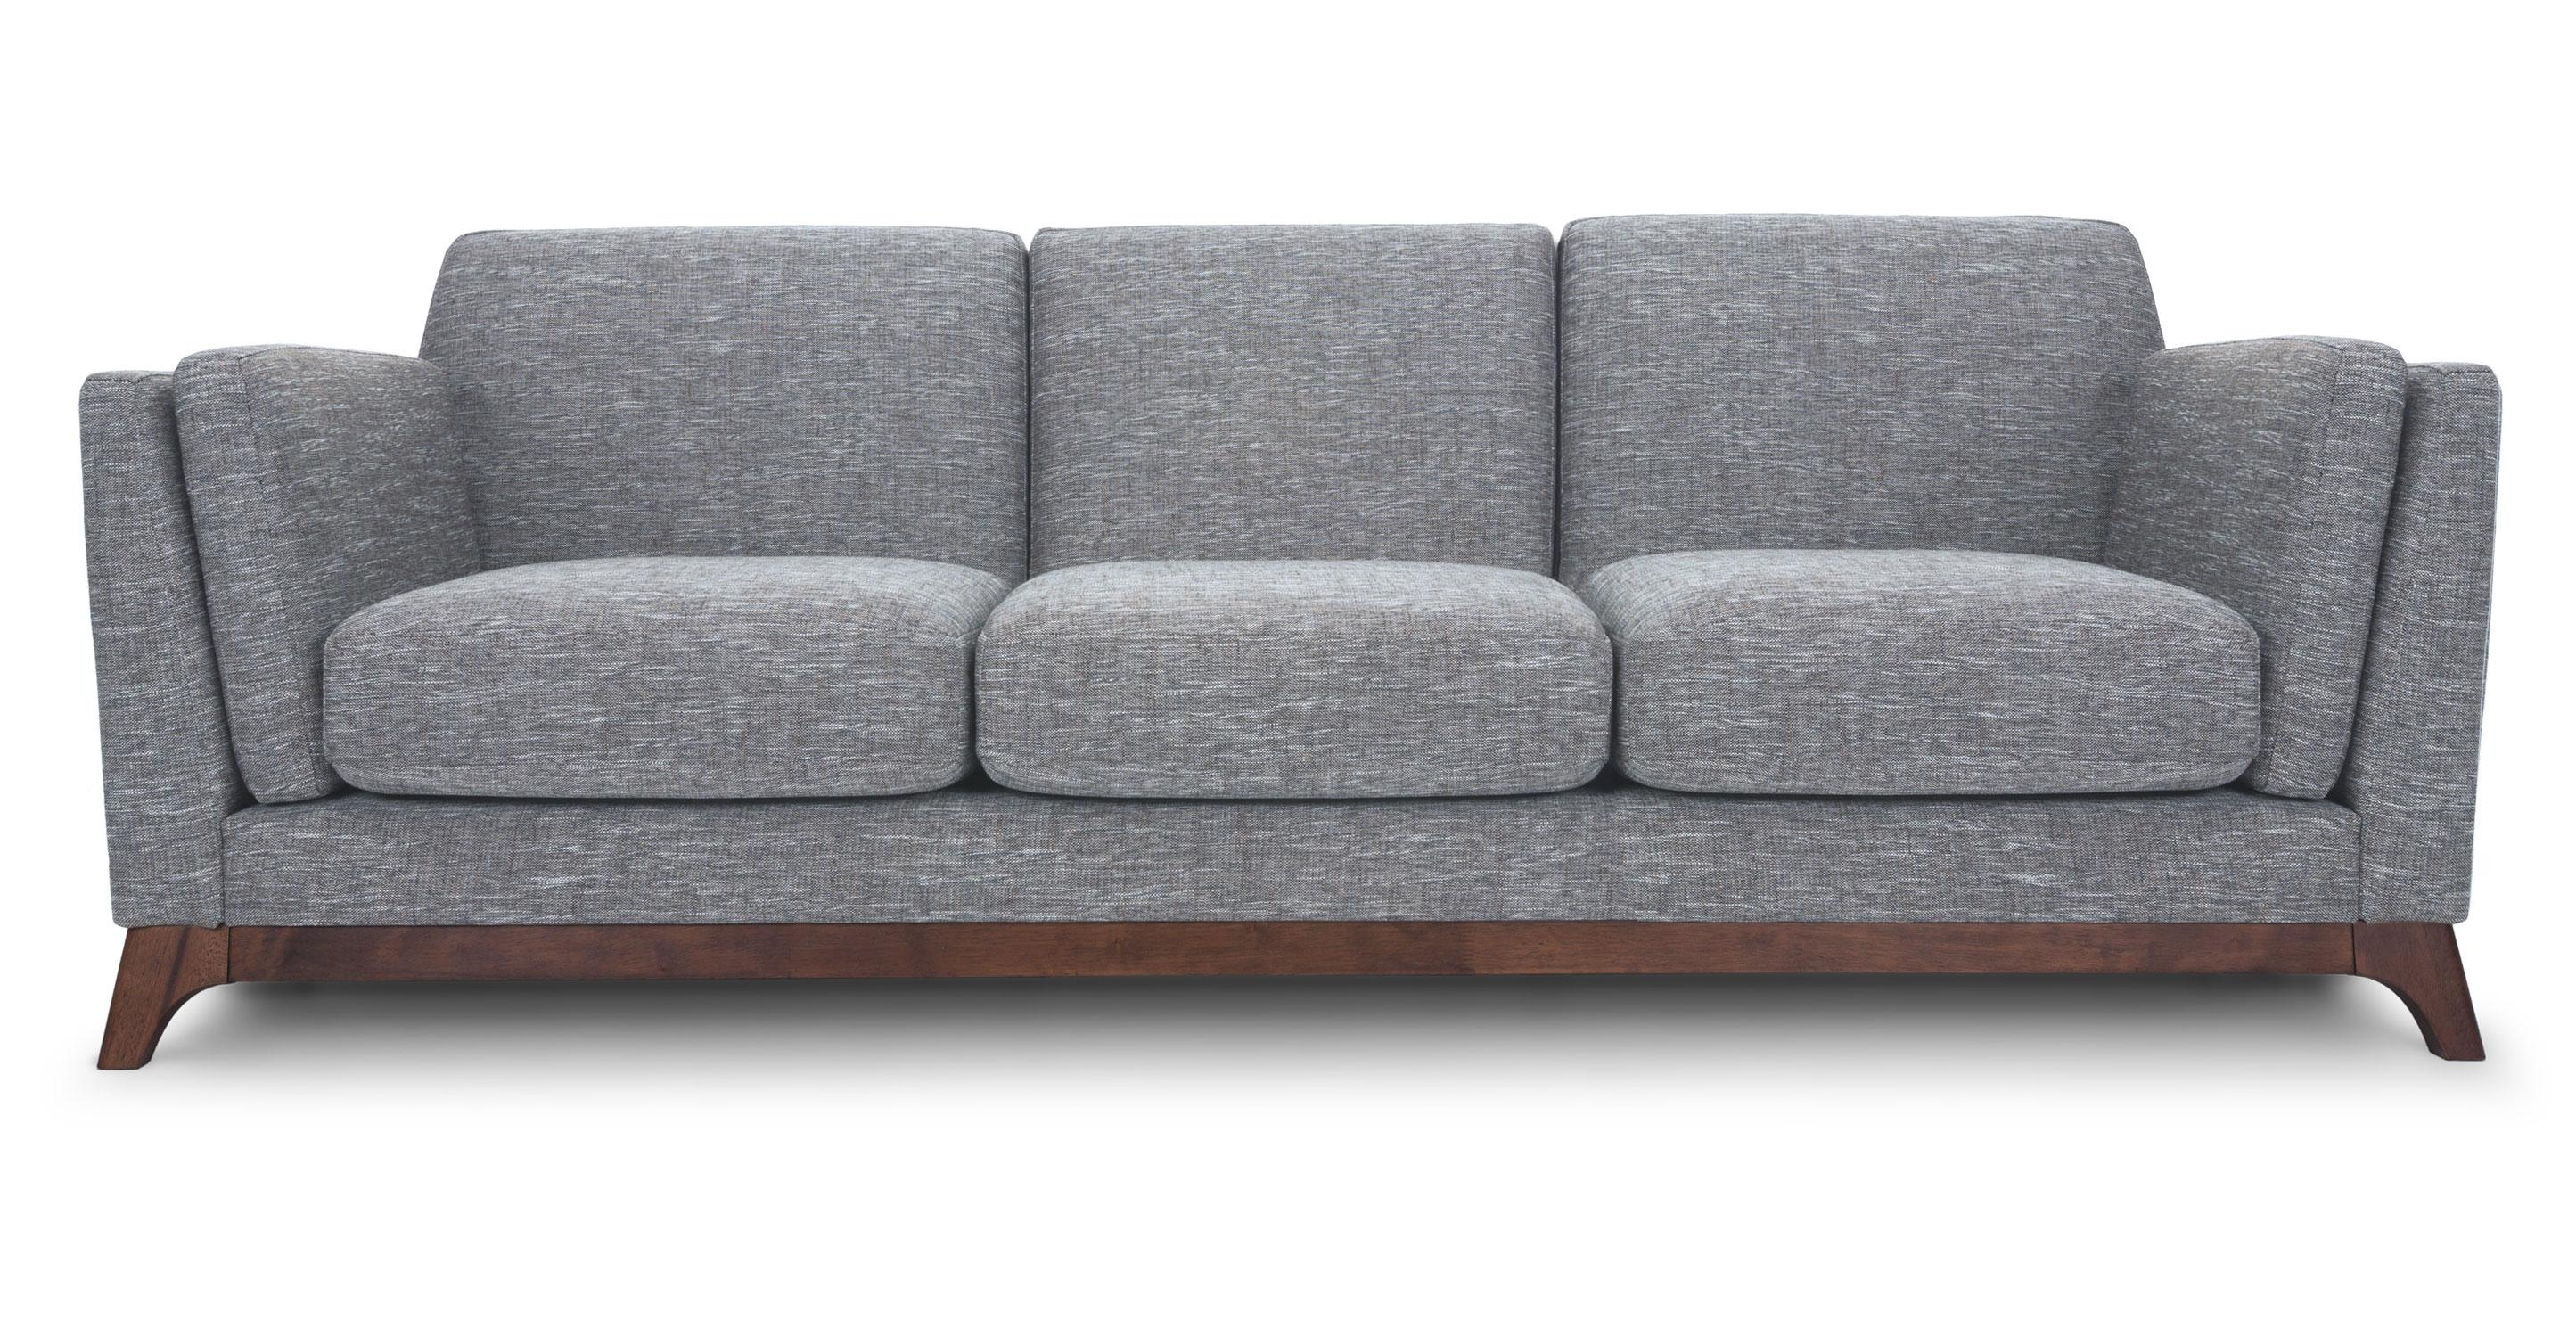 Sofas Center : Outstandingeap Gray Sofa Pictures Inspirations Grey For Gray Sofas (Image 20 of 20)